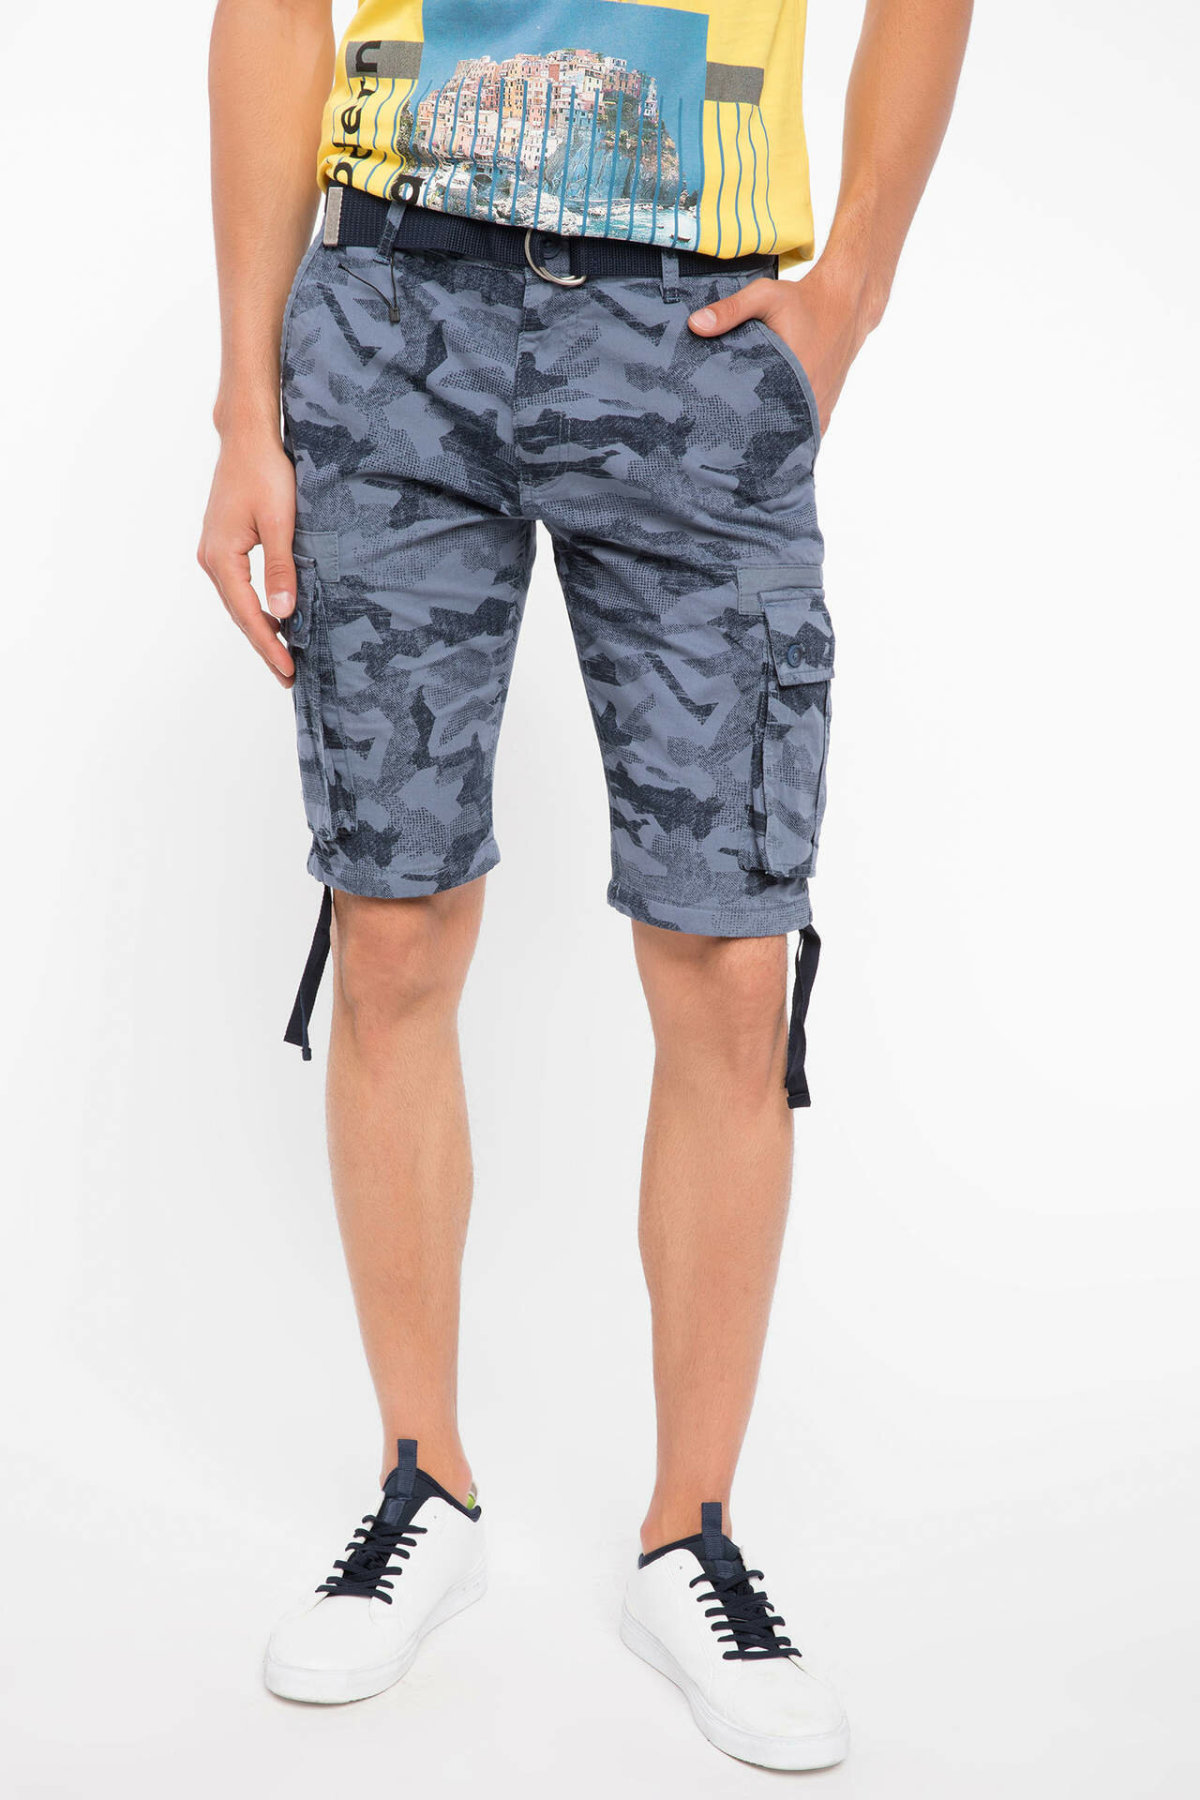 DeFacto Man Summer Blue Color Short Bottoms Men Lace-up Casual Shorts Men Blue Camouflage Bermuda Shorts-J0011AZ18SM